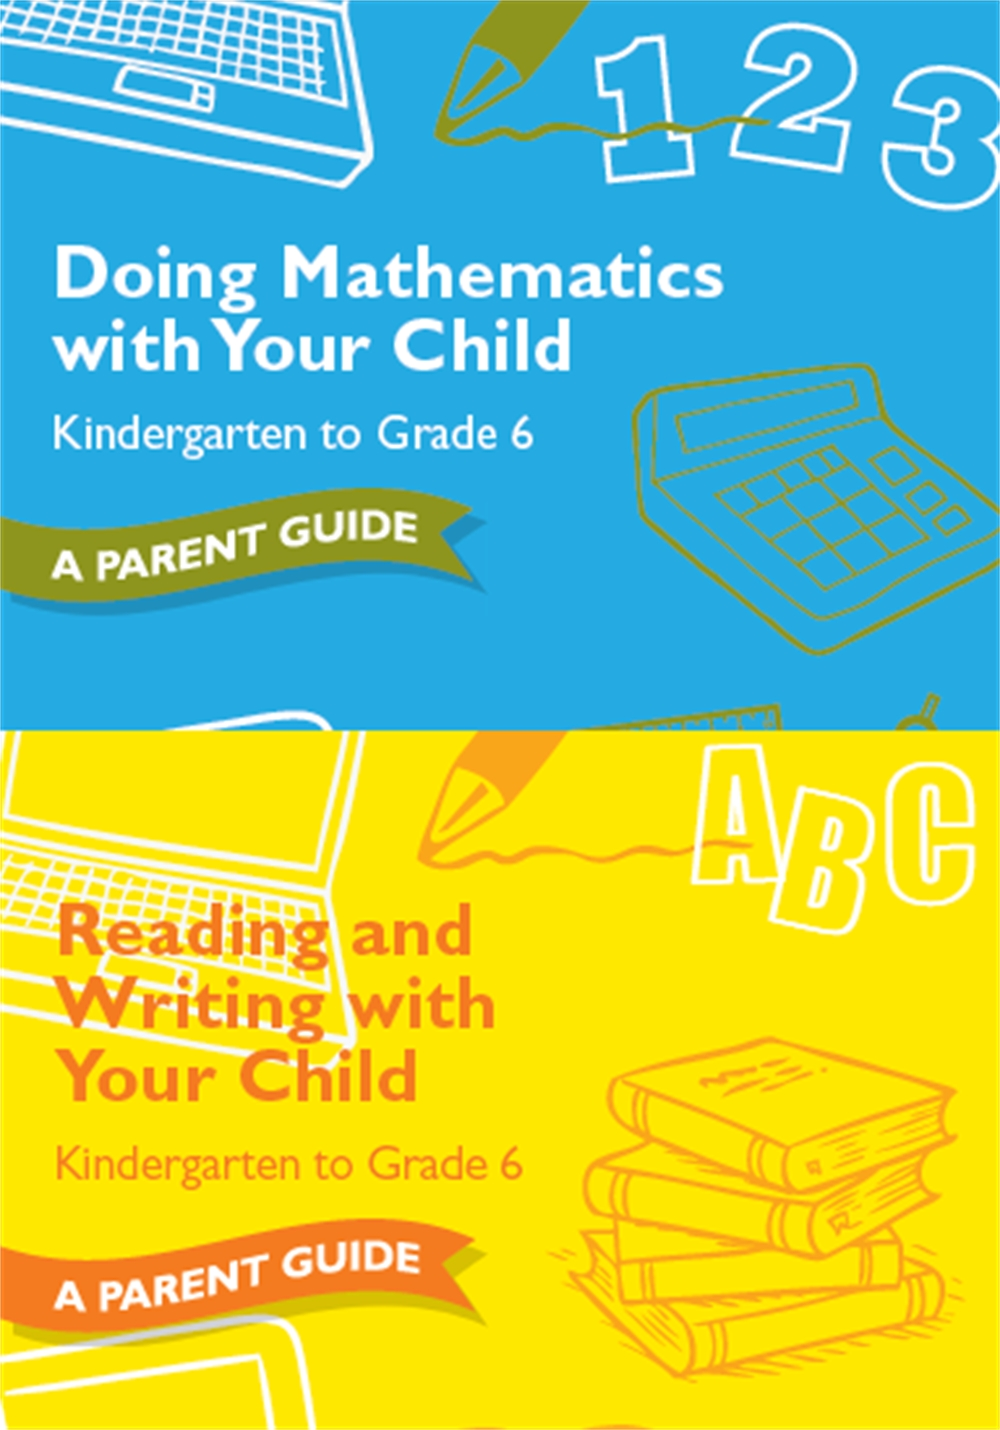 Doing Mathematics / Reading and Writing with Your Child